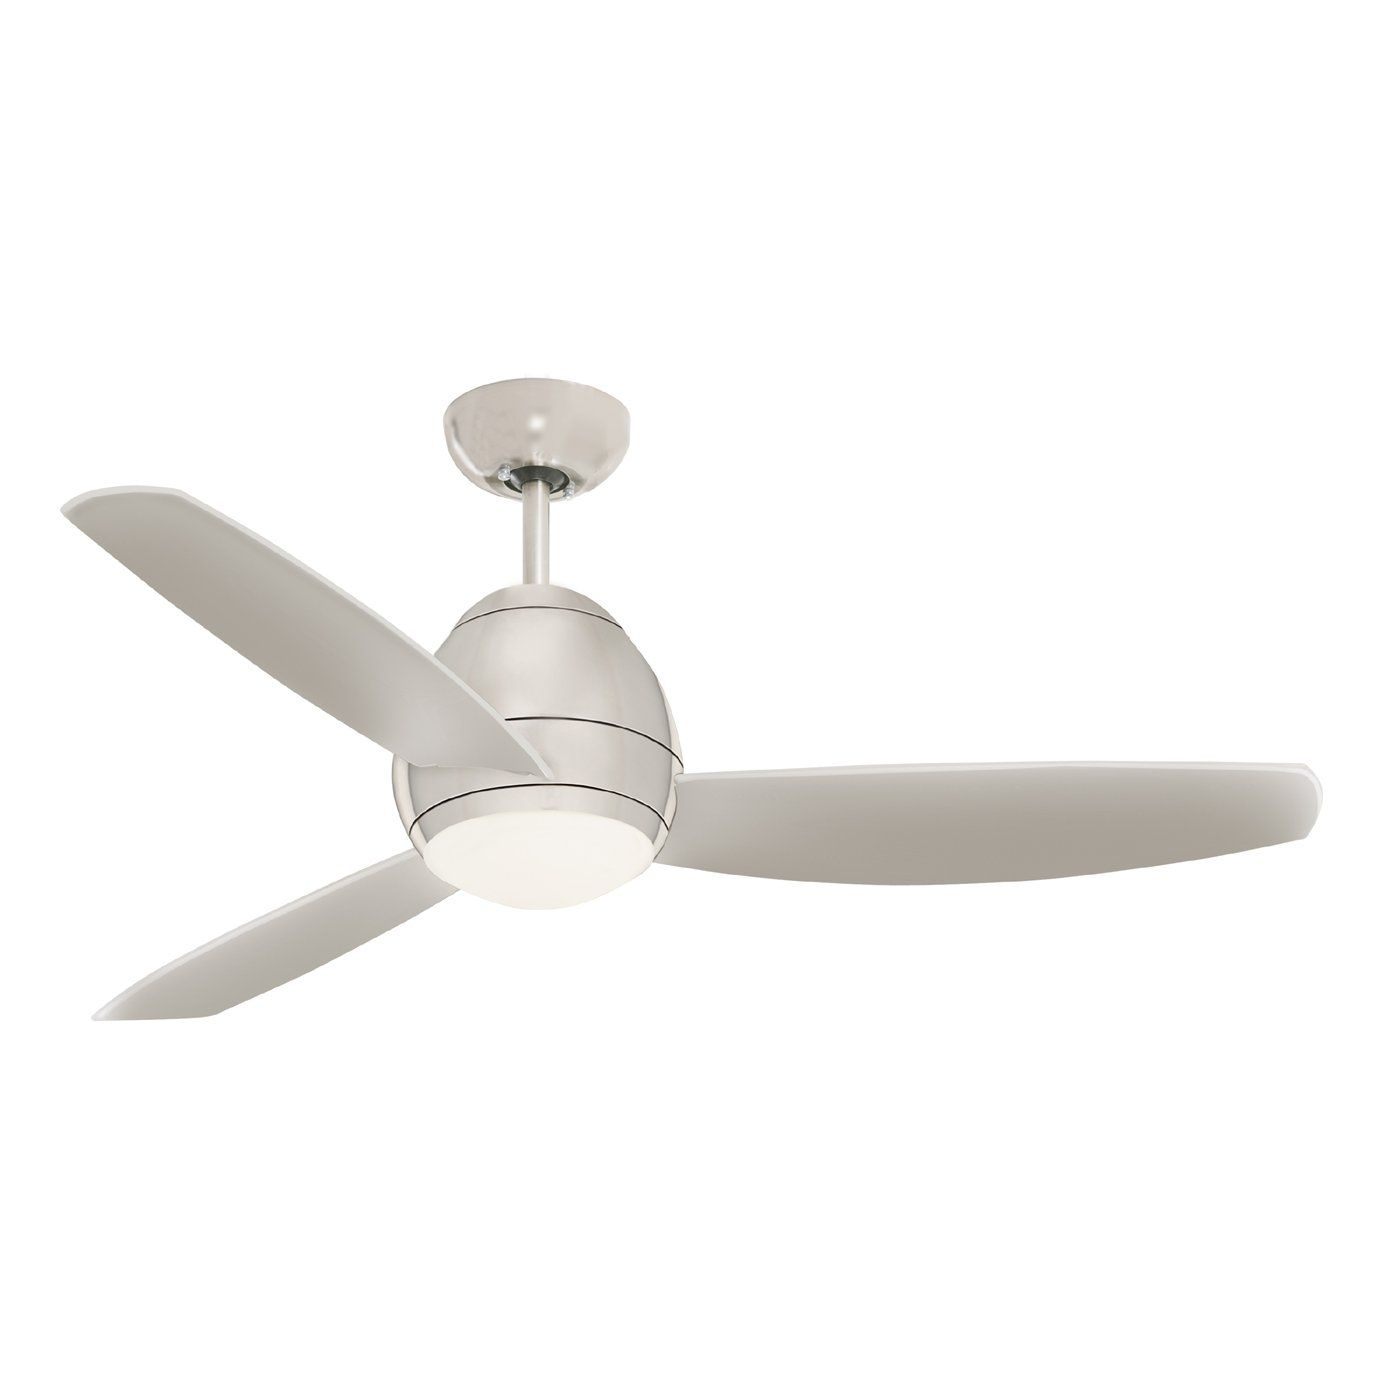 Shop emerson electric cf252 2 light 52 in curva ceiling fan at atg shop emerson electric cf252 2 light 52 in curva ceiling fan at atg stores mozeypictures Choice Image